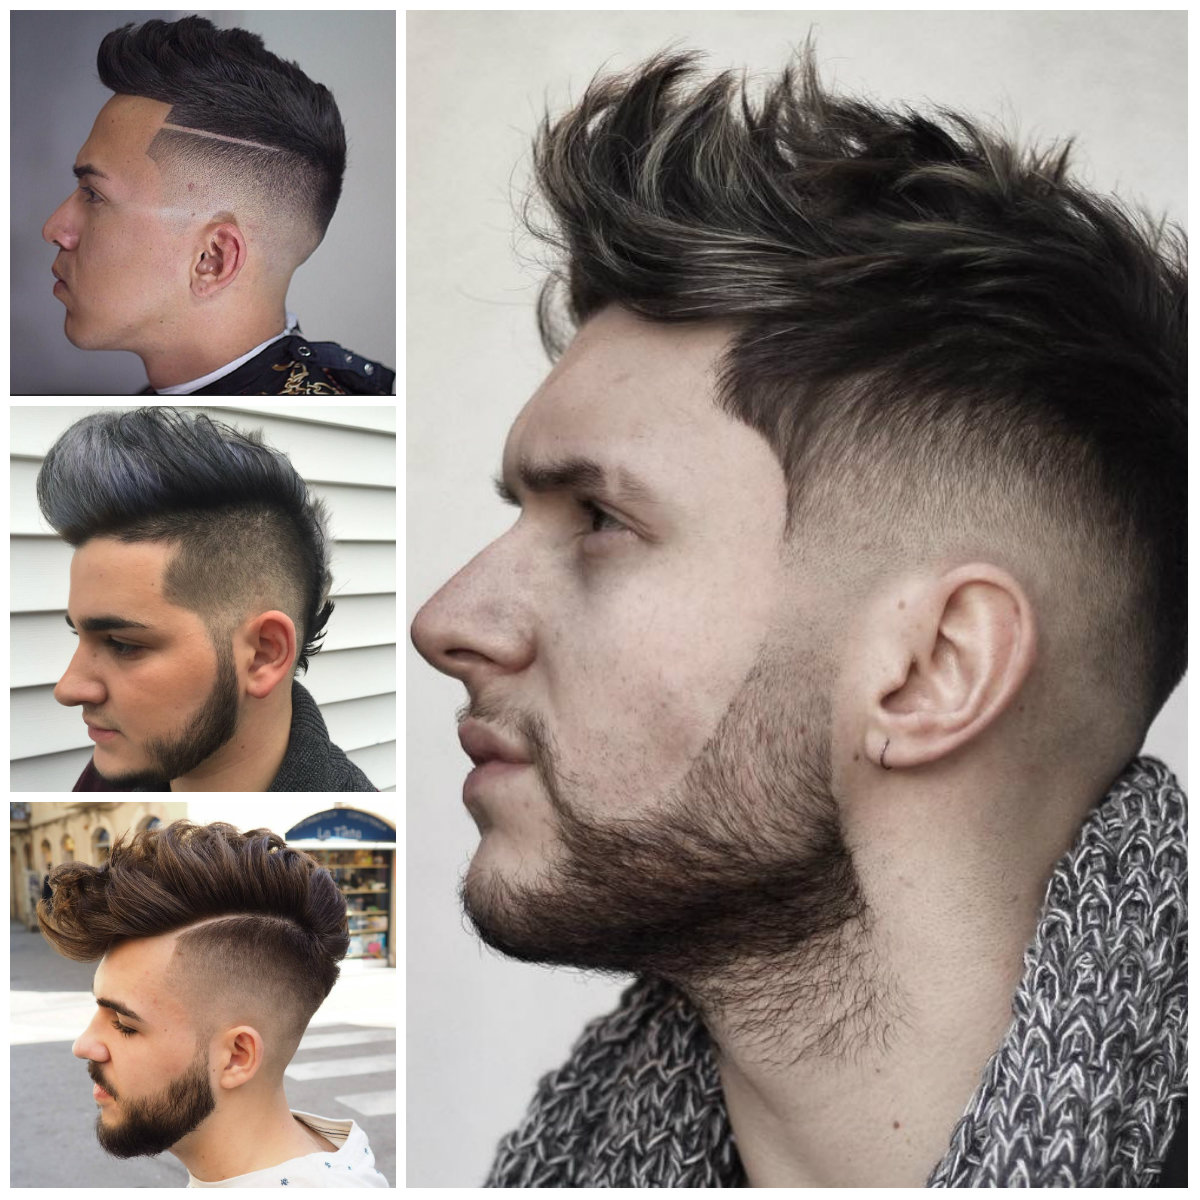 Trendy Hairstyles For Men 2017 Haircuts Hairstyles And Hair Colors Haircuts